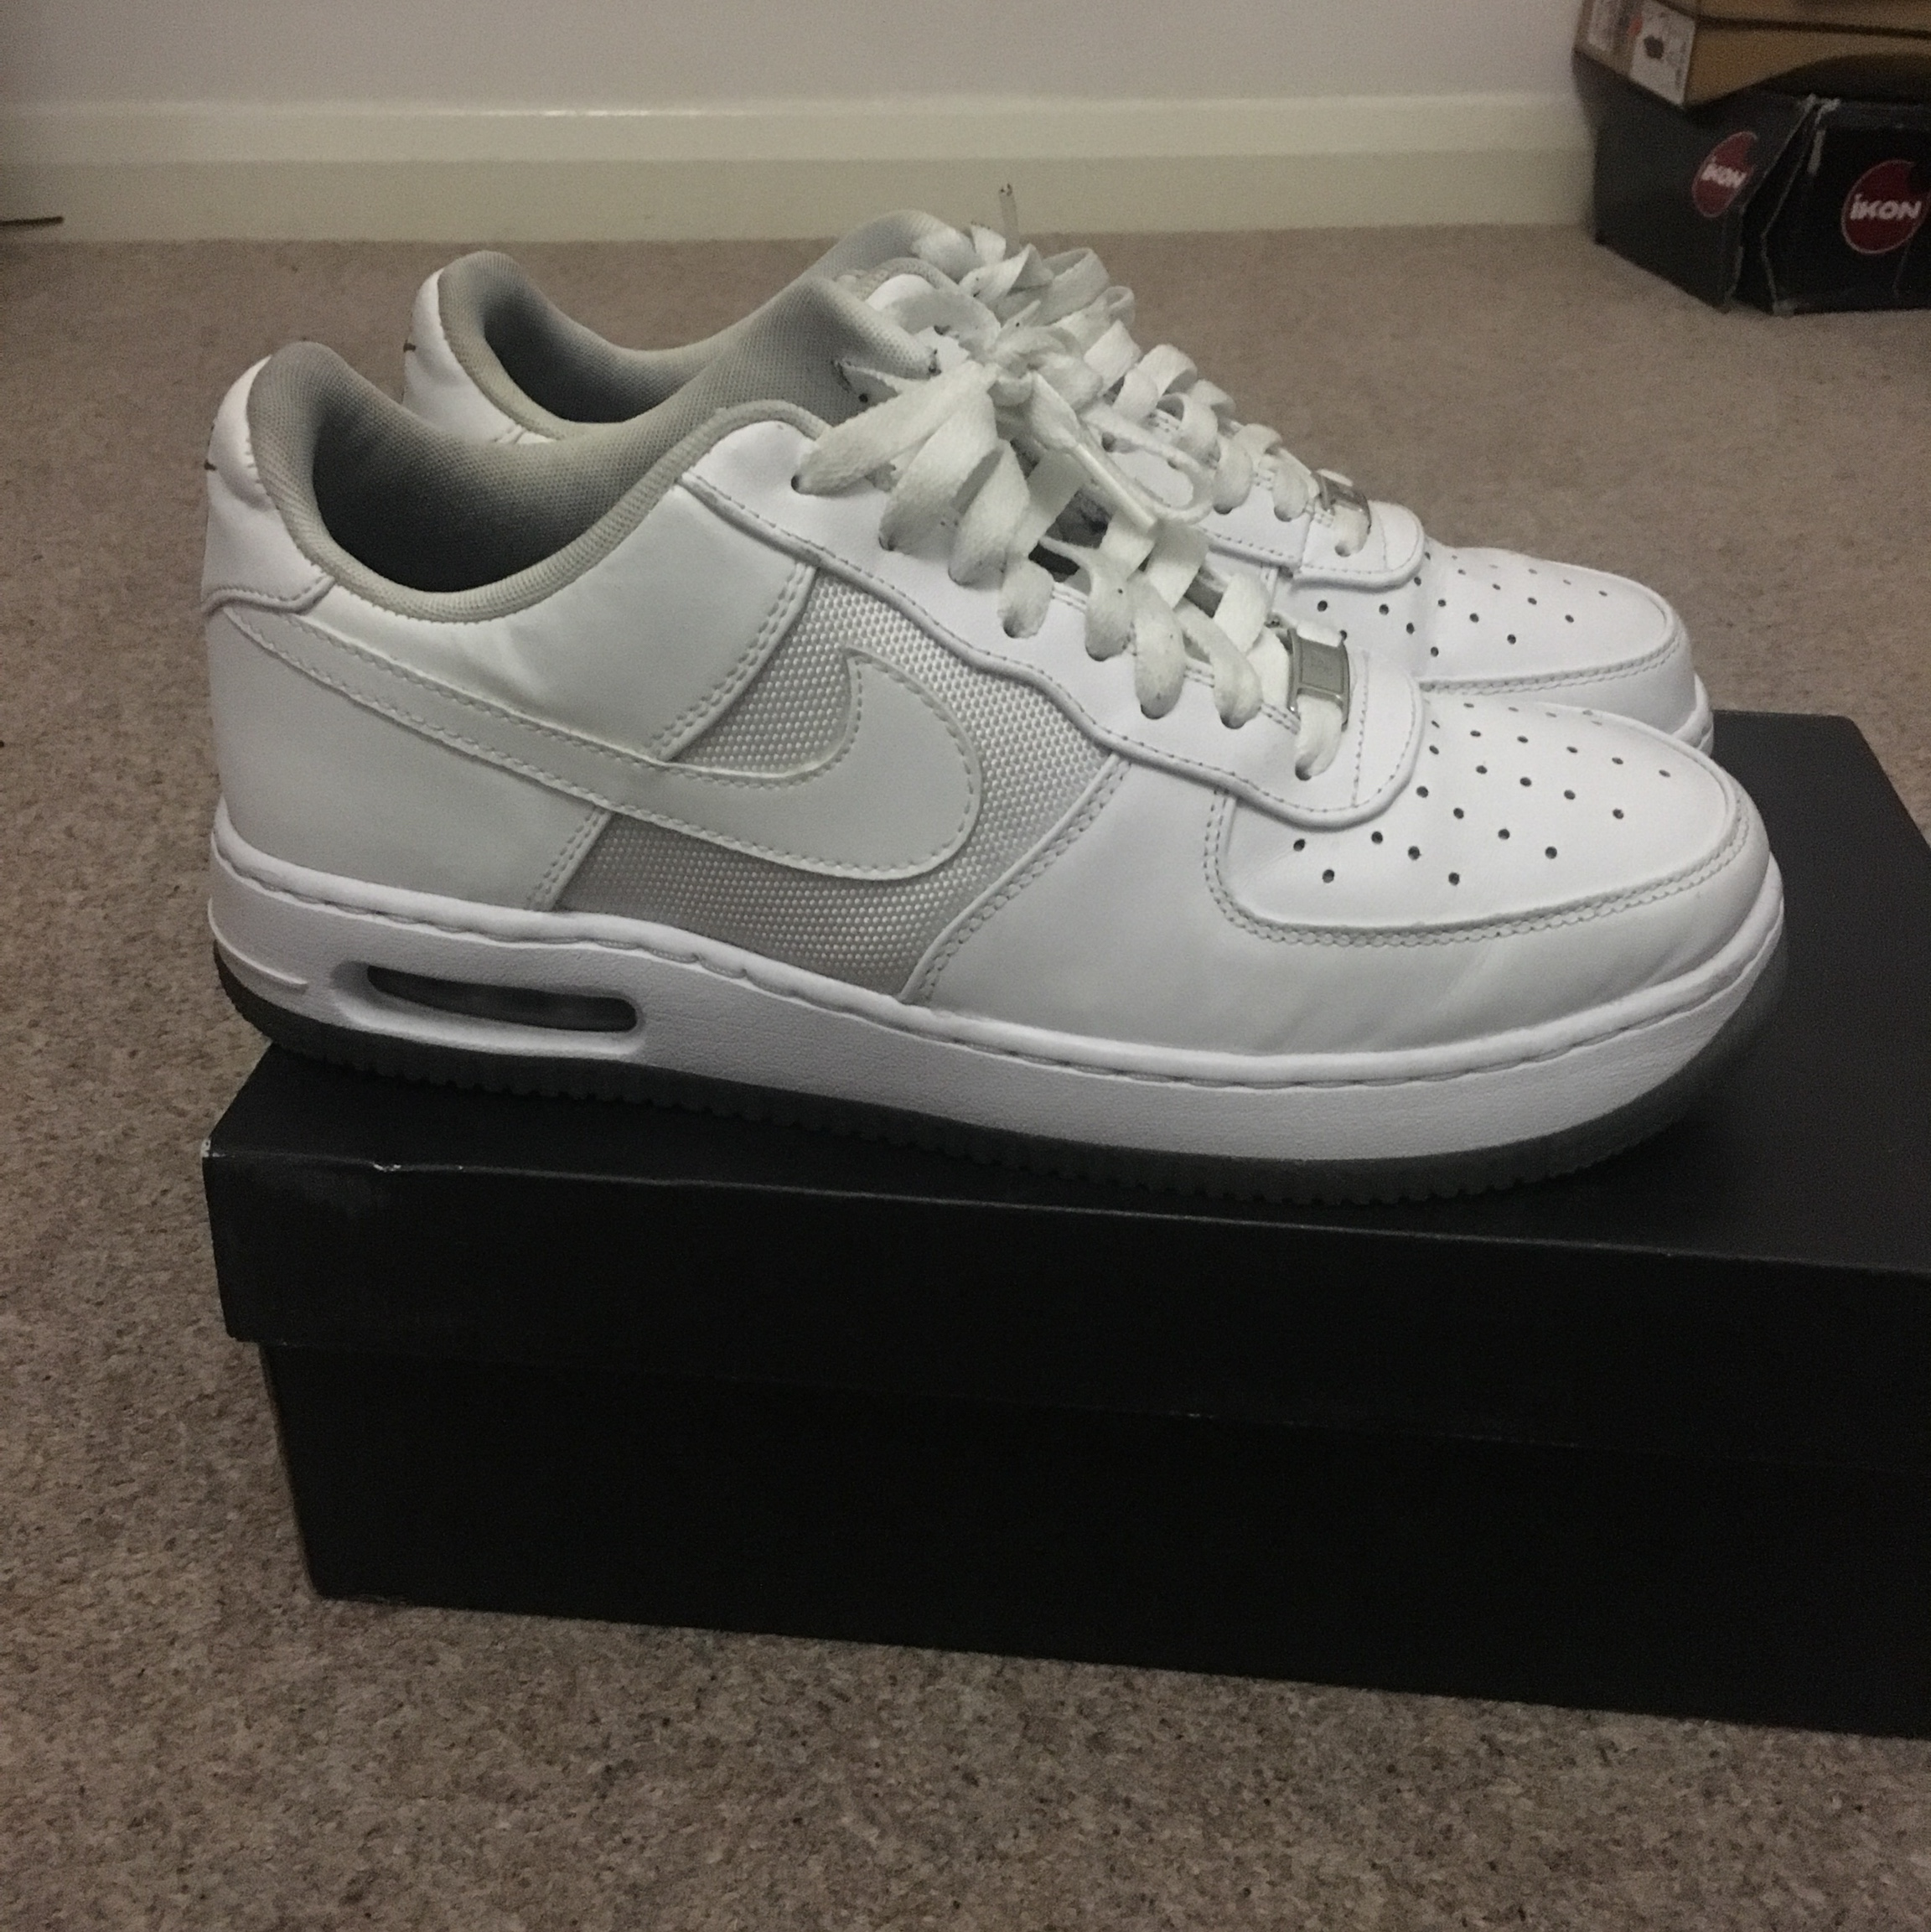 Air Force 1 Elite with Air bubble\\light